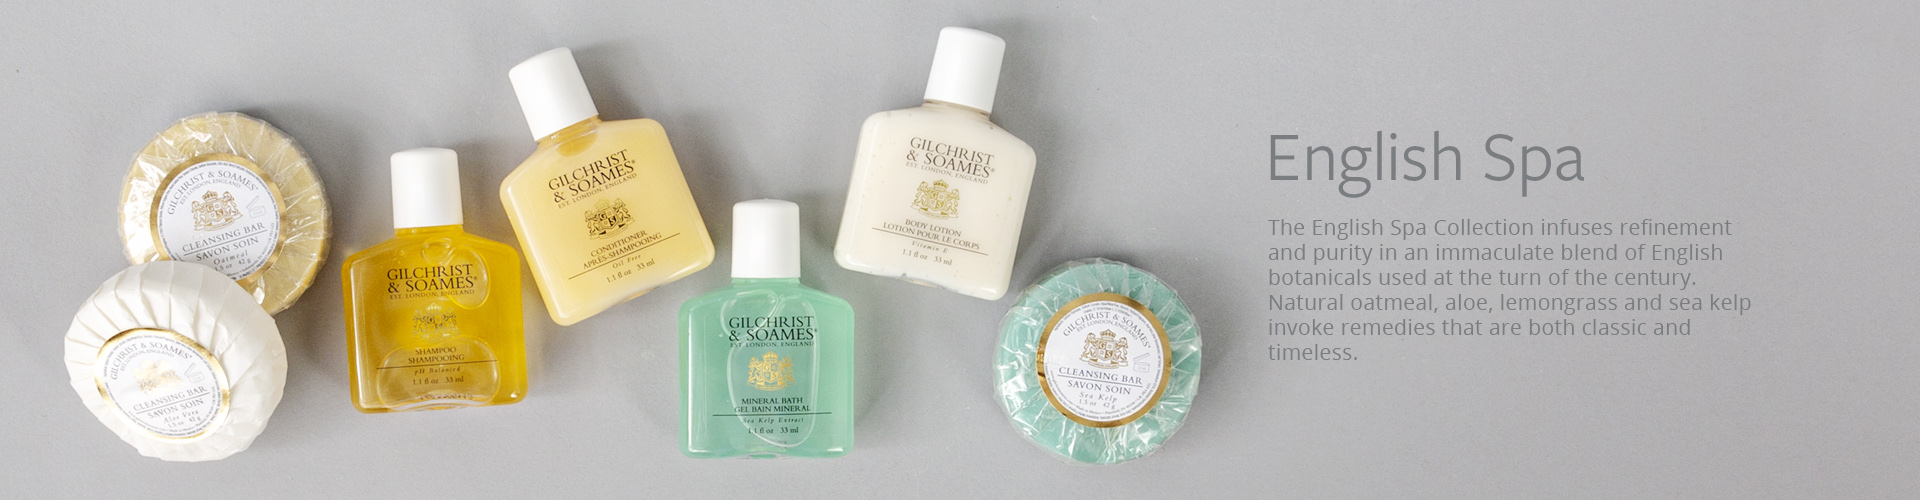 Gilchrist & Soames English Spa